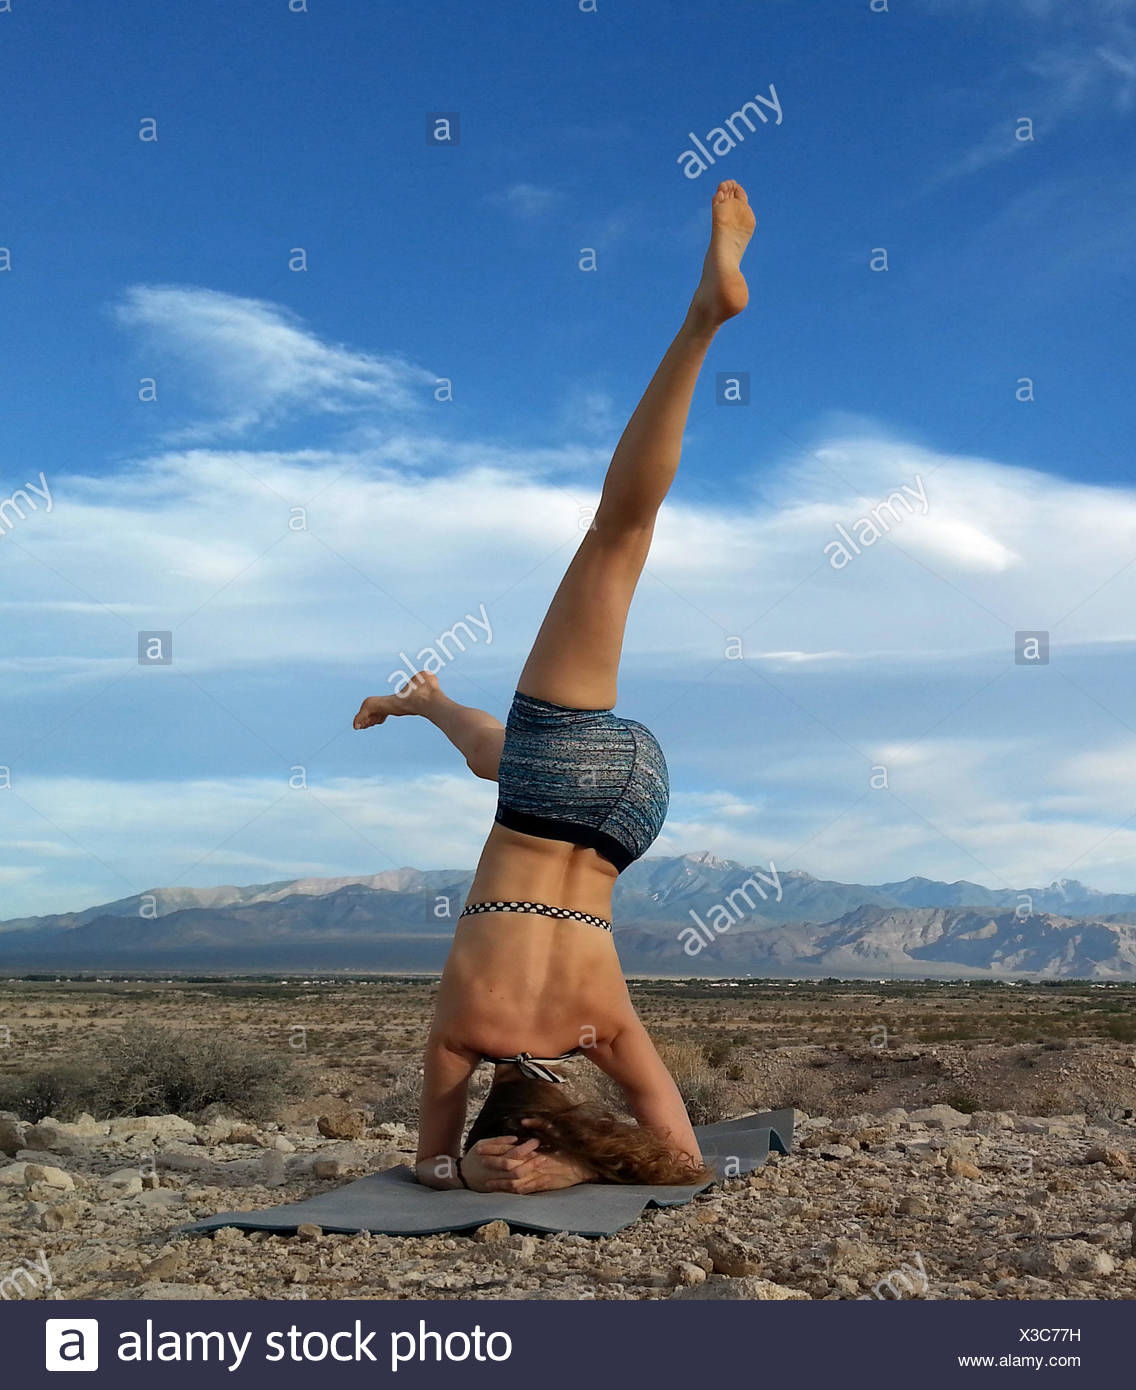 Women doing a head stand in the desert, Nevada, America, USA - Stock Image